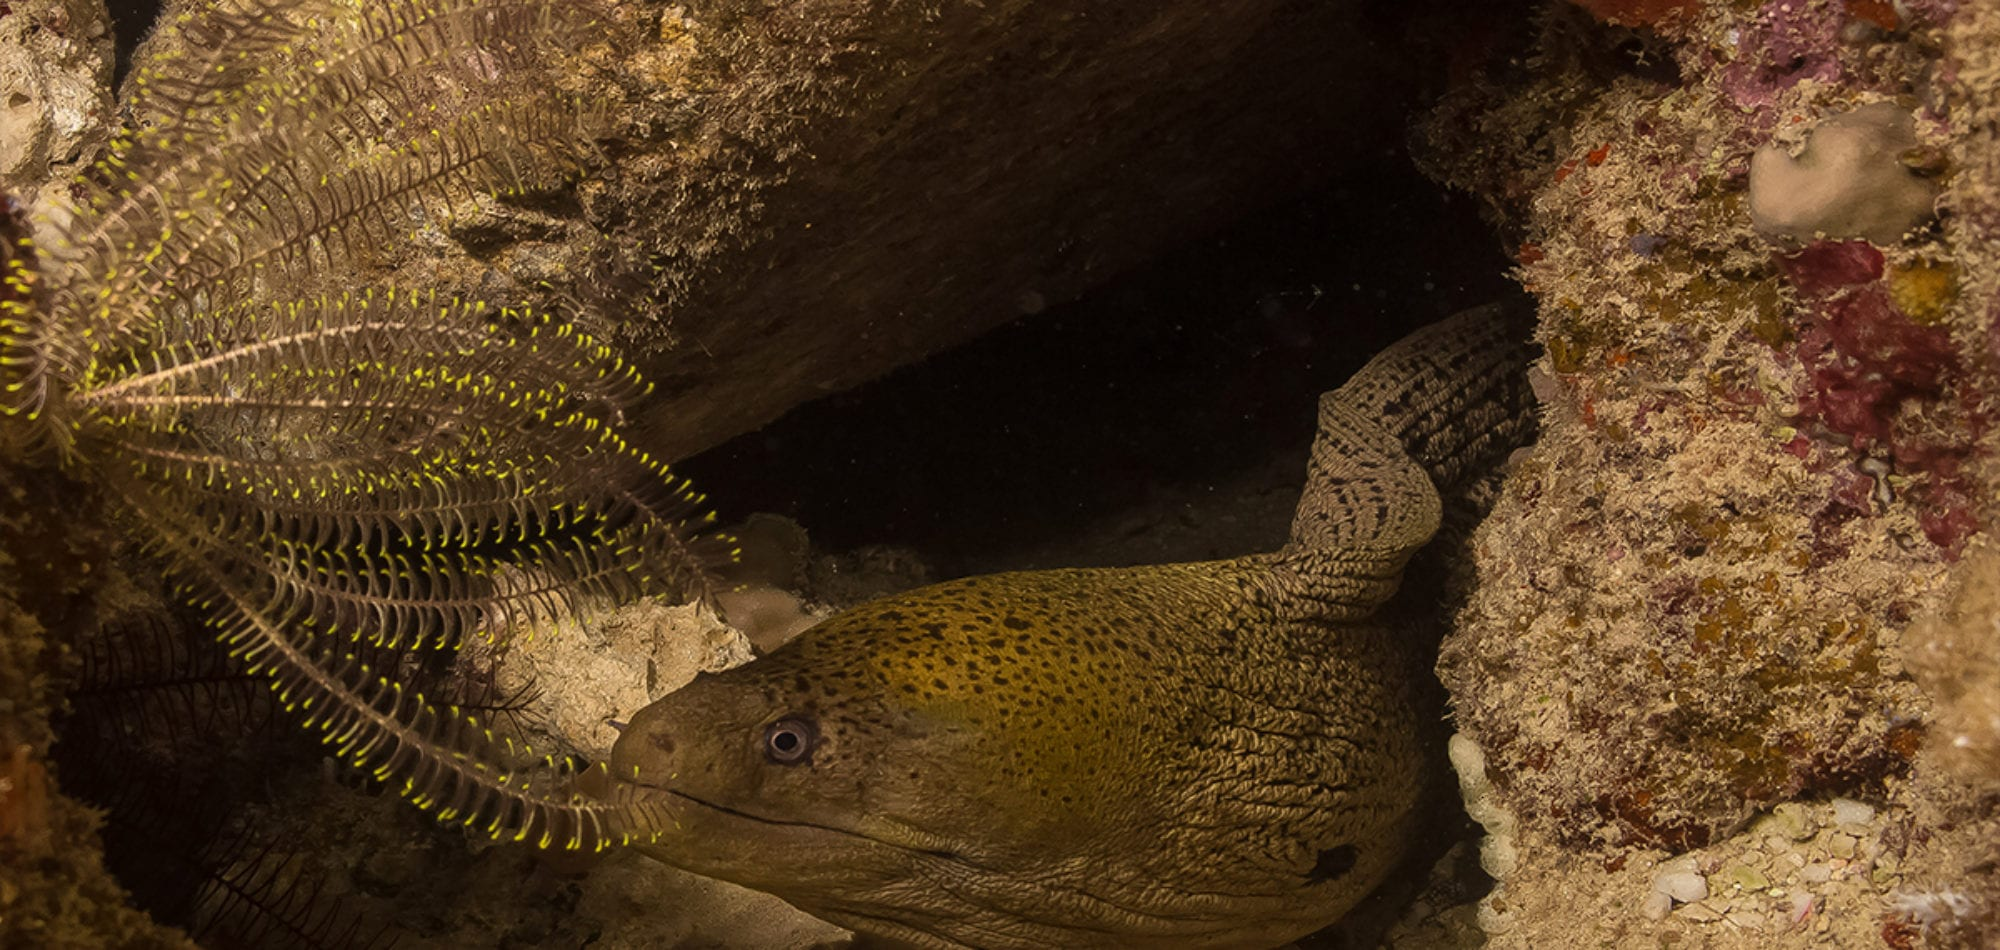 Mike Ball dive holiday - underwater image of a Moray Eel